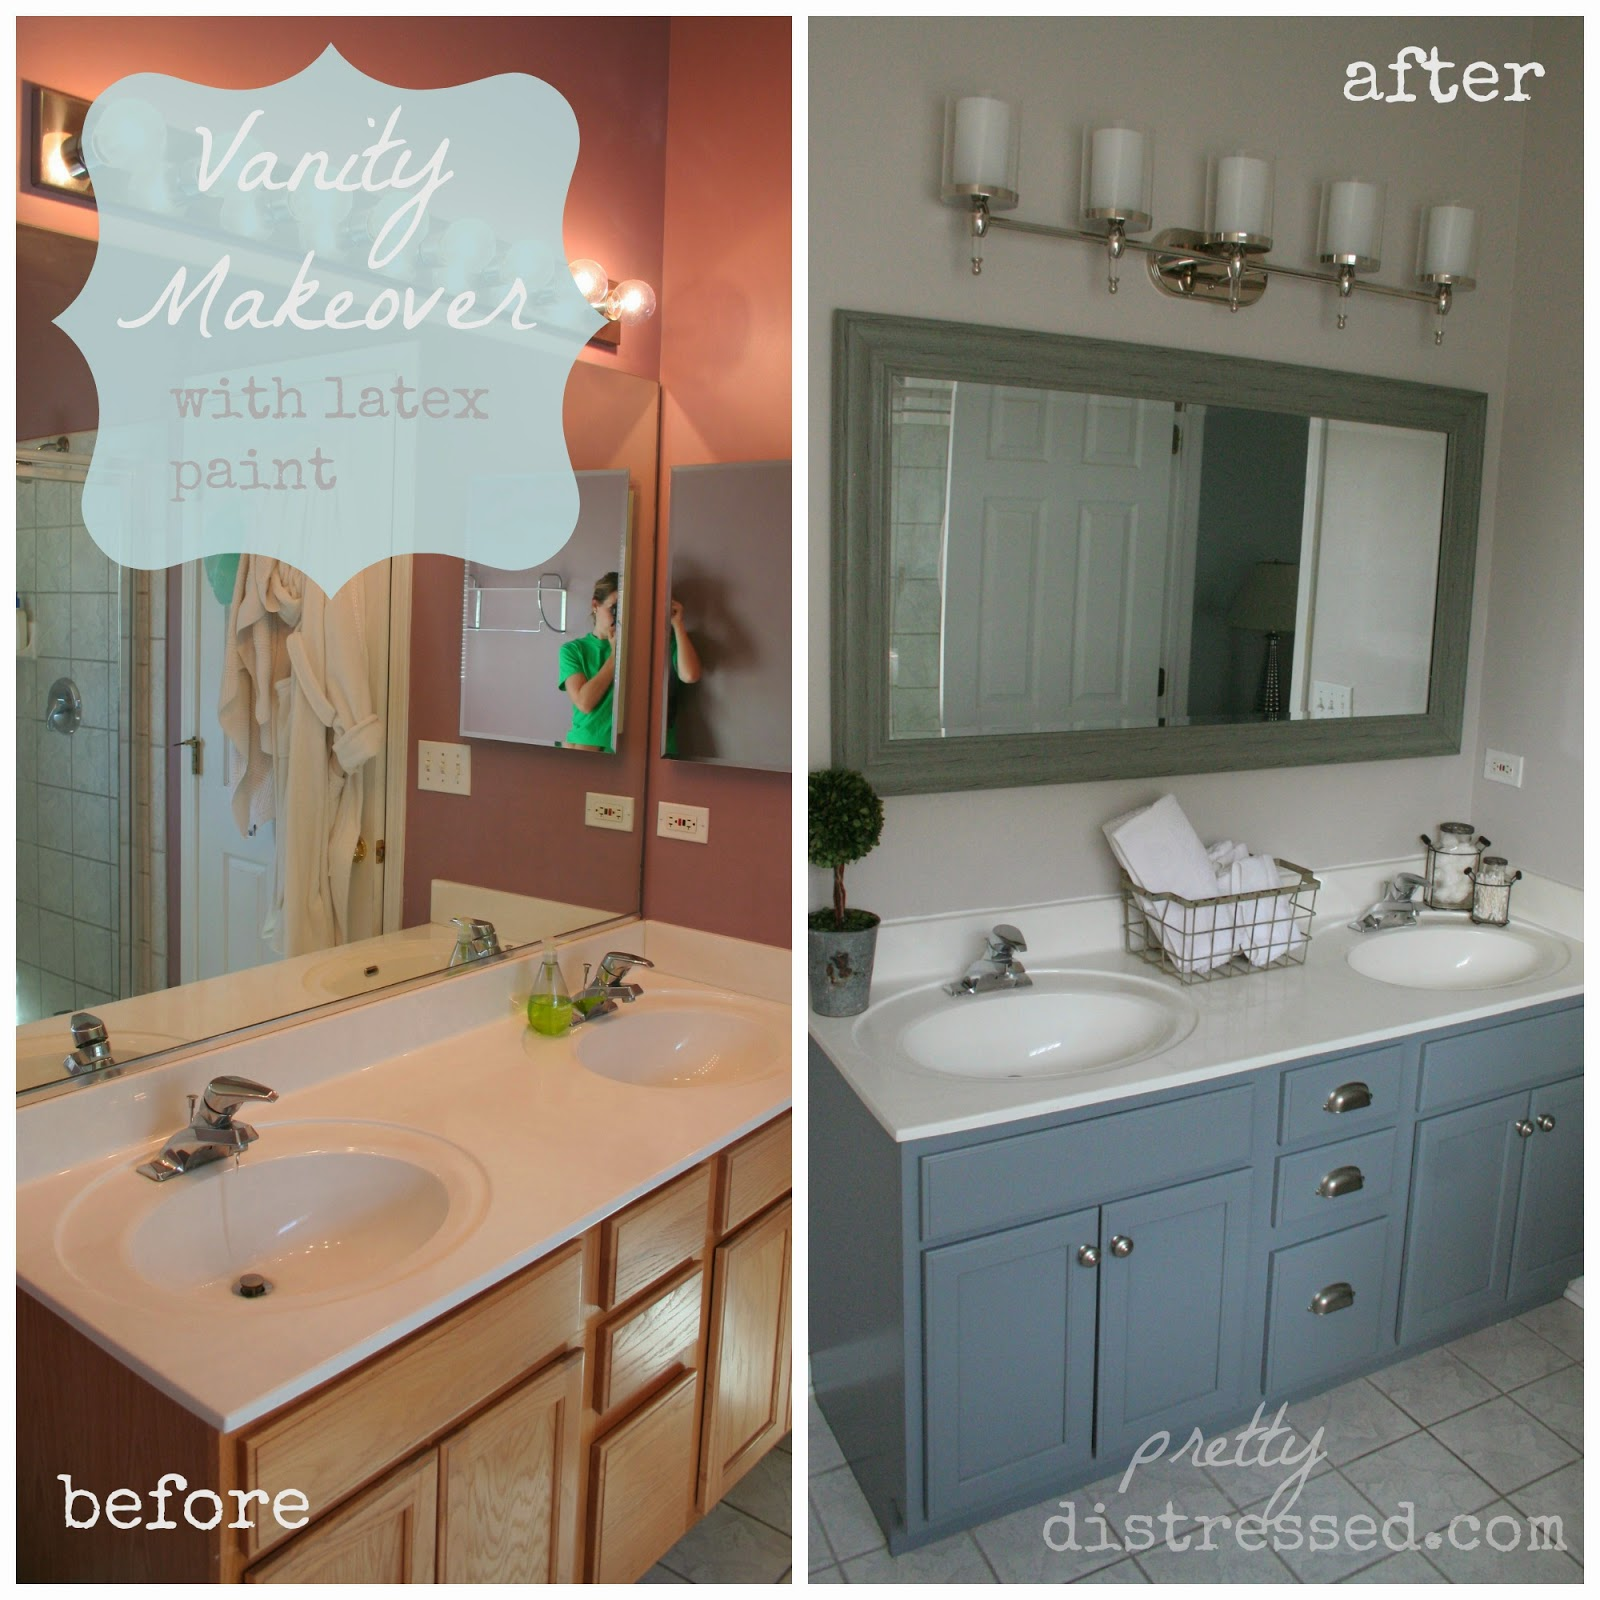 Elegant Bathroom Vanity Makeover with Latex Paint